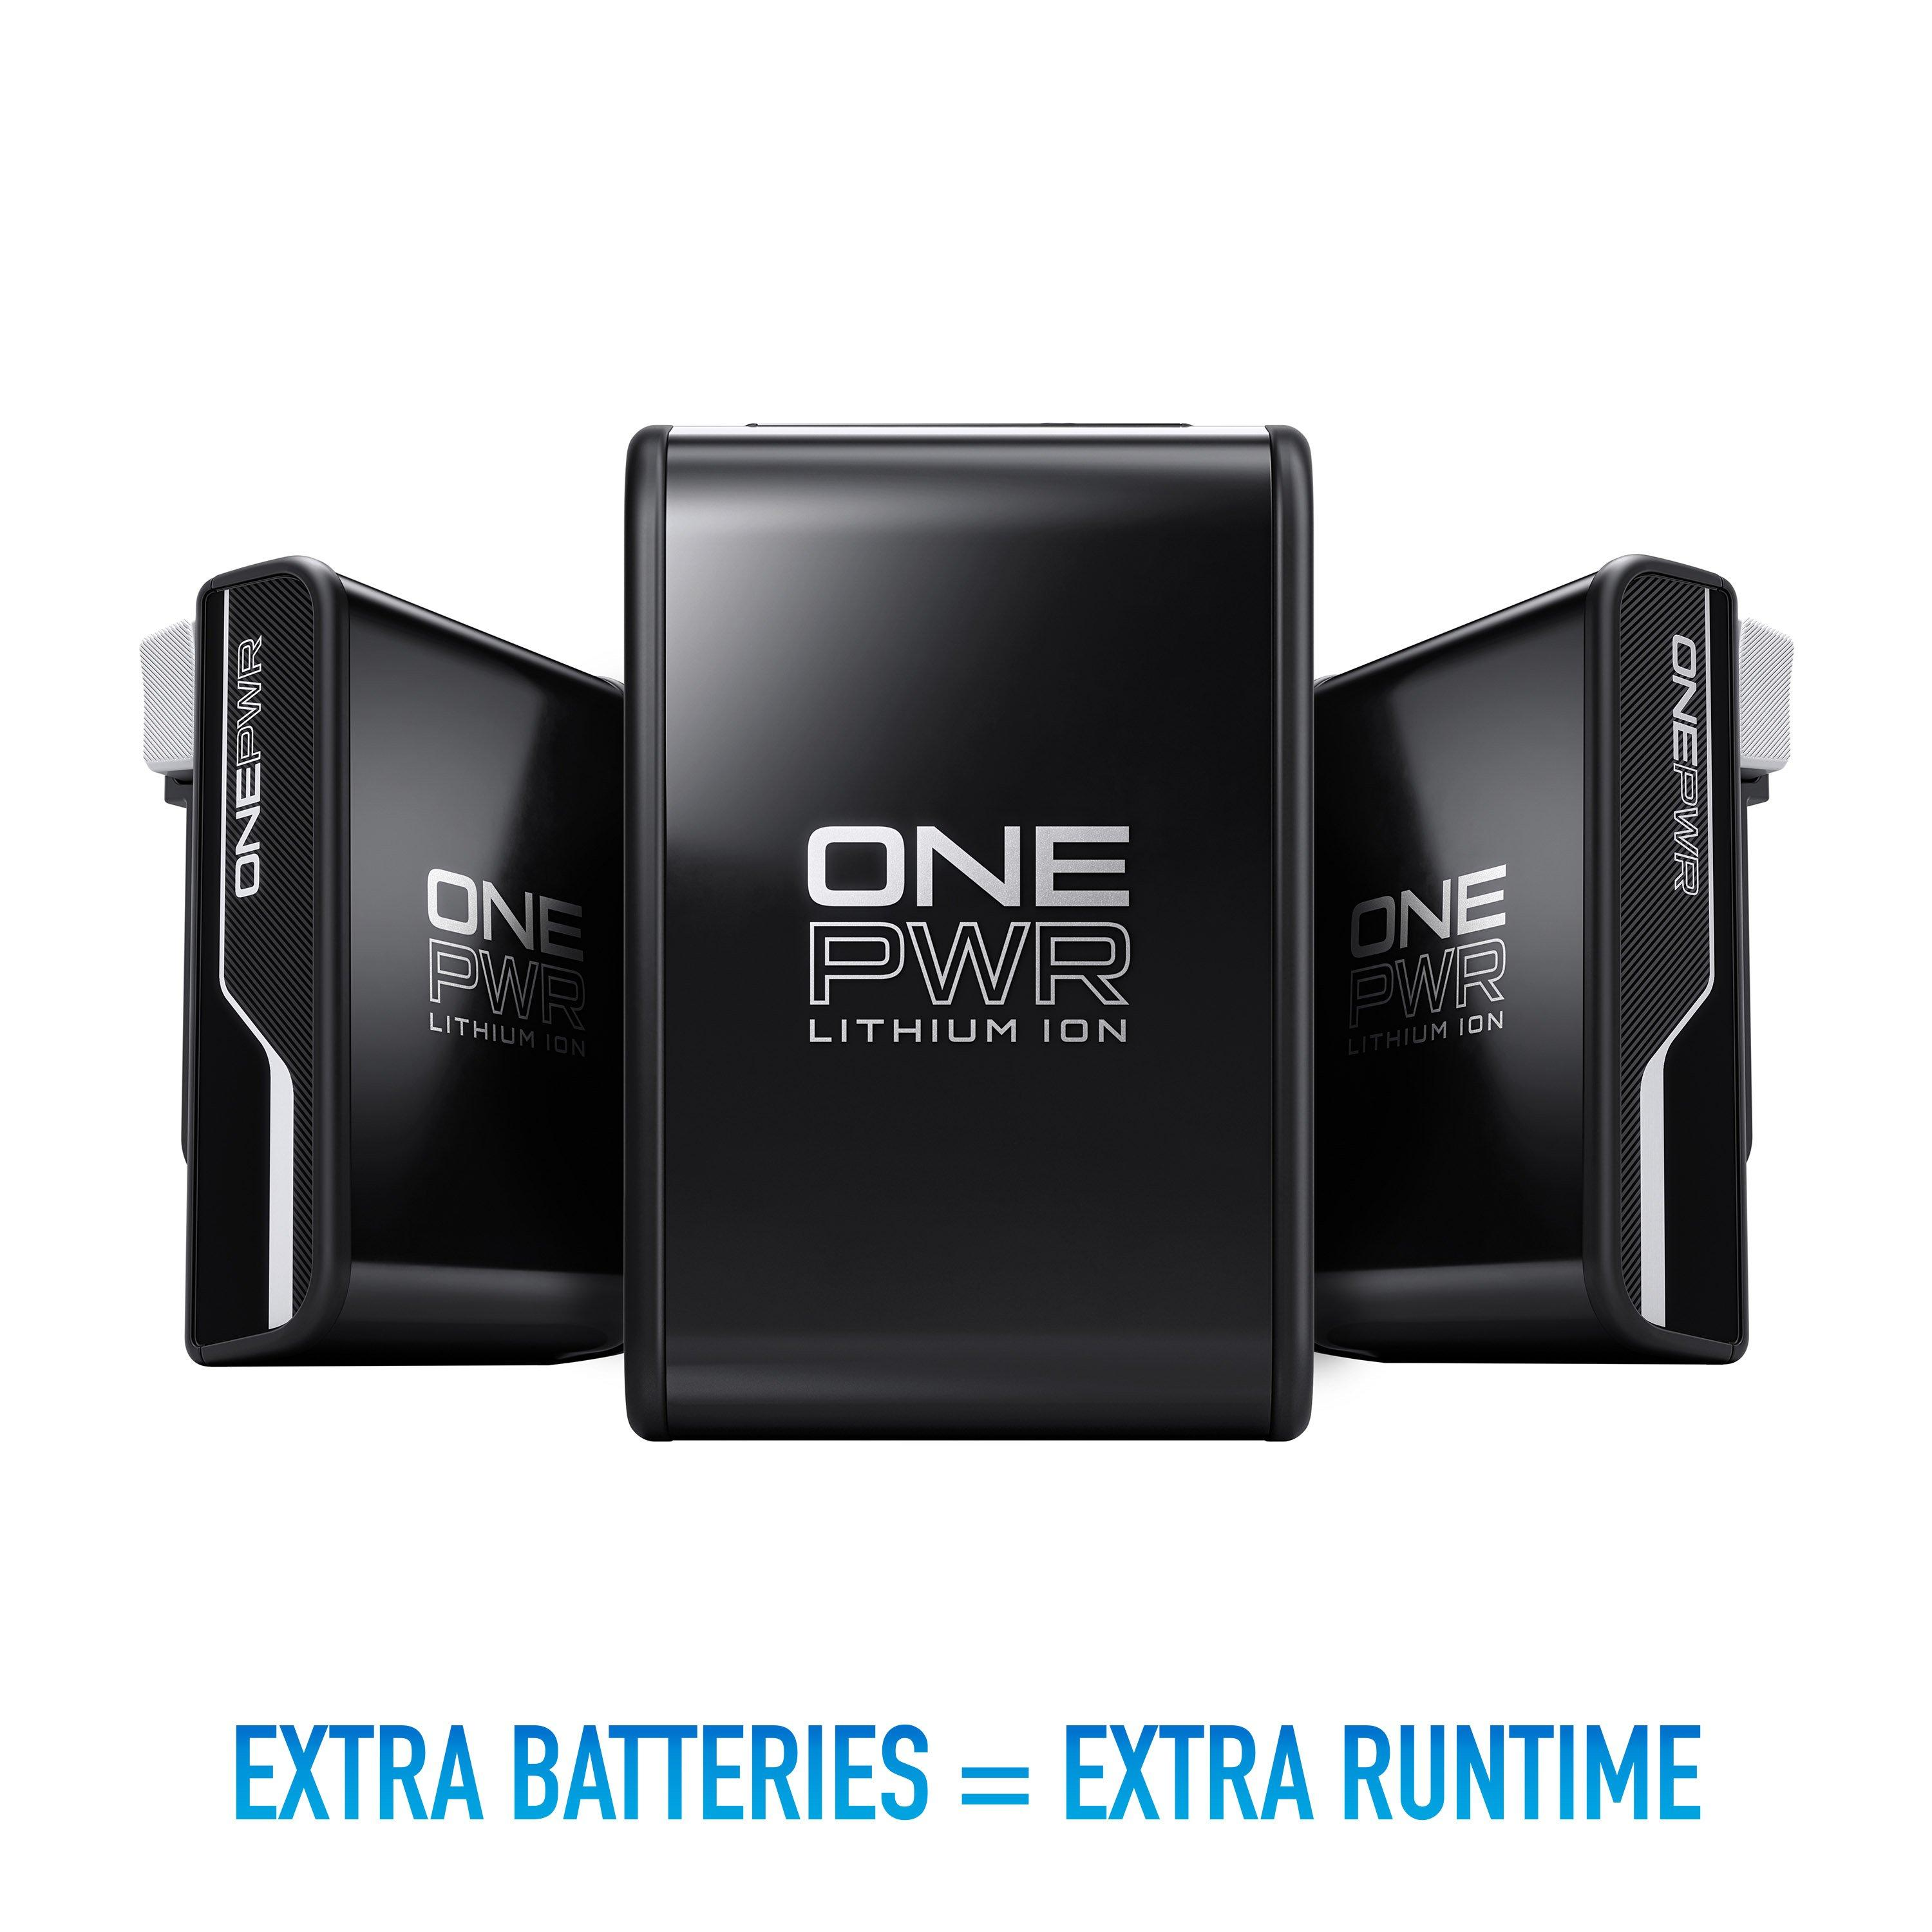 ONEPWR 3.0 Ah Lithium-Ion Battery4